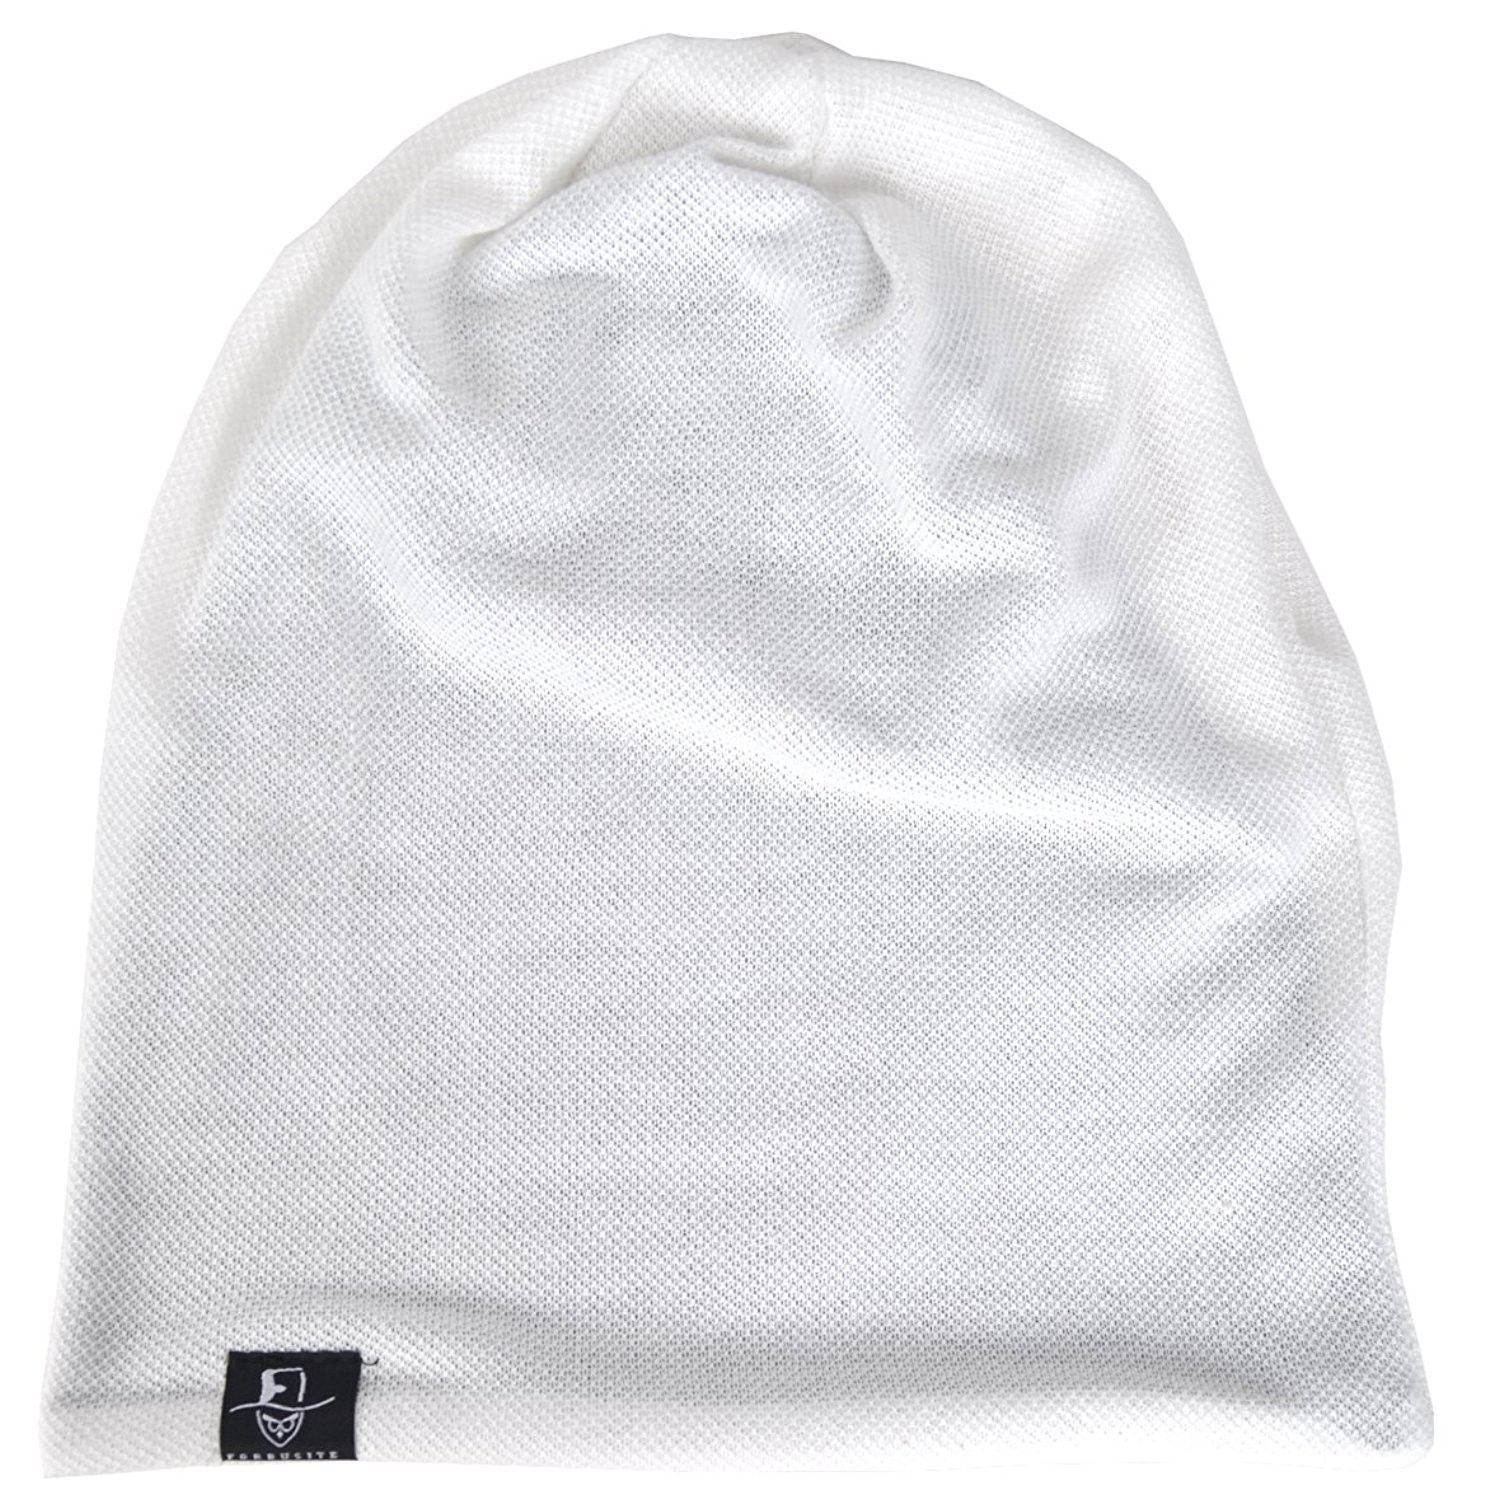 44662654e8a36 Men Slouch Beanie Baggy Slouchy skullcap Knit Hat - White - CQ1832O5DH8 -  Hats   Caps